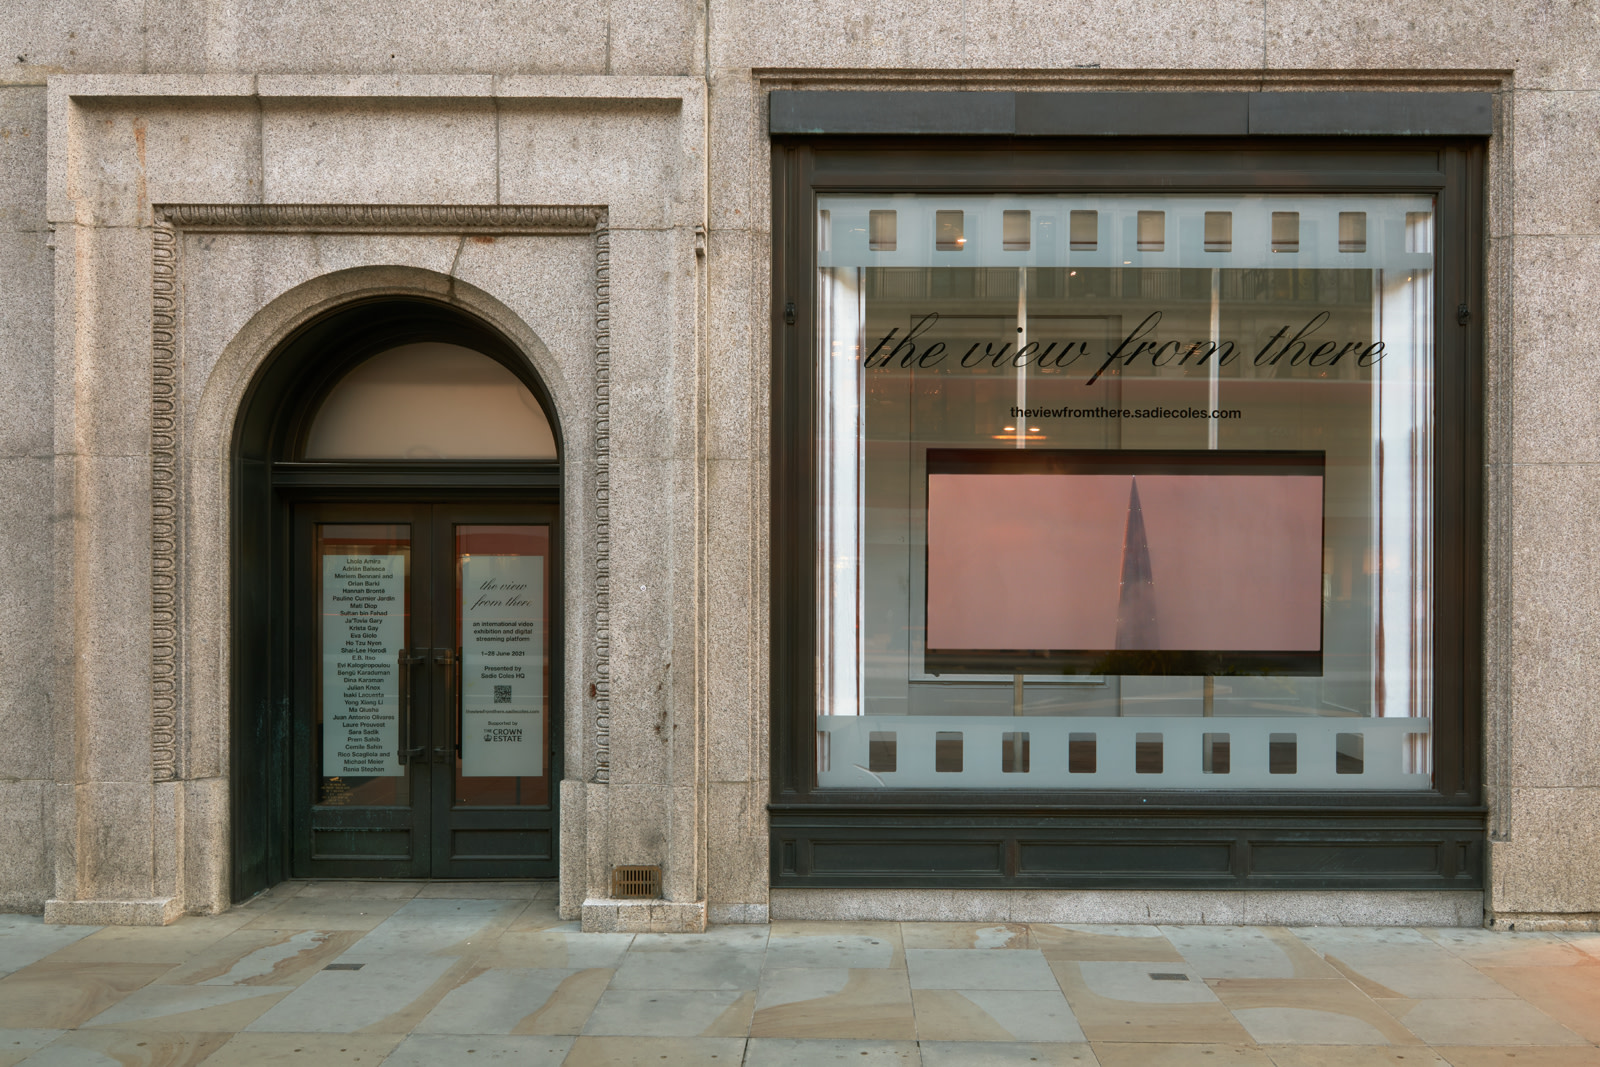 """<div class=""""artwork_caption""""><p>Installation view,<em>the view from there</em>,Sadie Coles HQ offsite at 169 - 173 Regent Street, W1, 1 - 28 June 2021</p><p>Photography byRobert Glowacki</p></div>"""